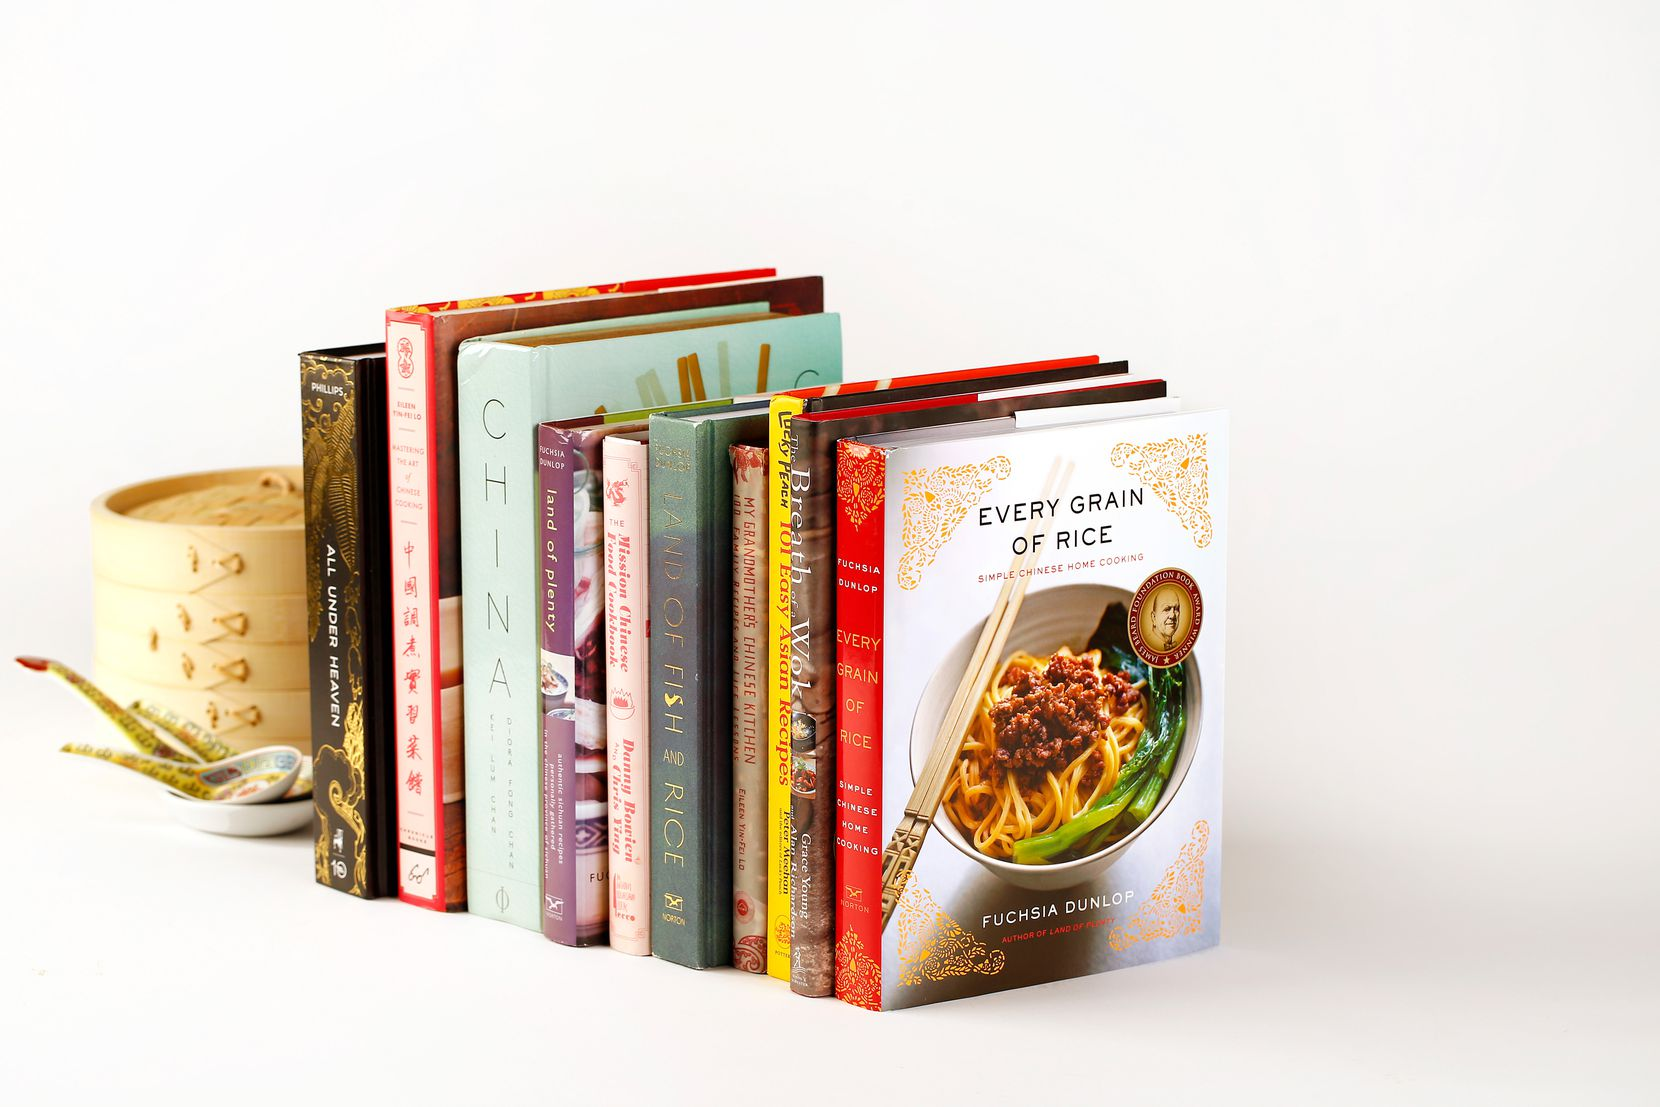 From regional deep-dives to friendly books for beginners to comprehensive classics, there's something for every type of cook in our selection of recommended Chinese cookbooks.